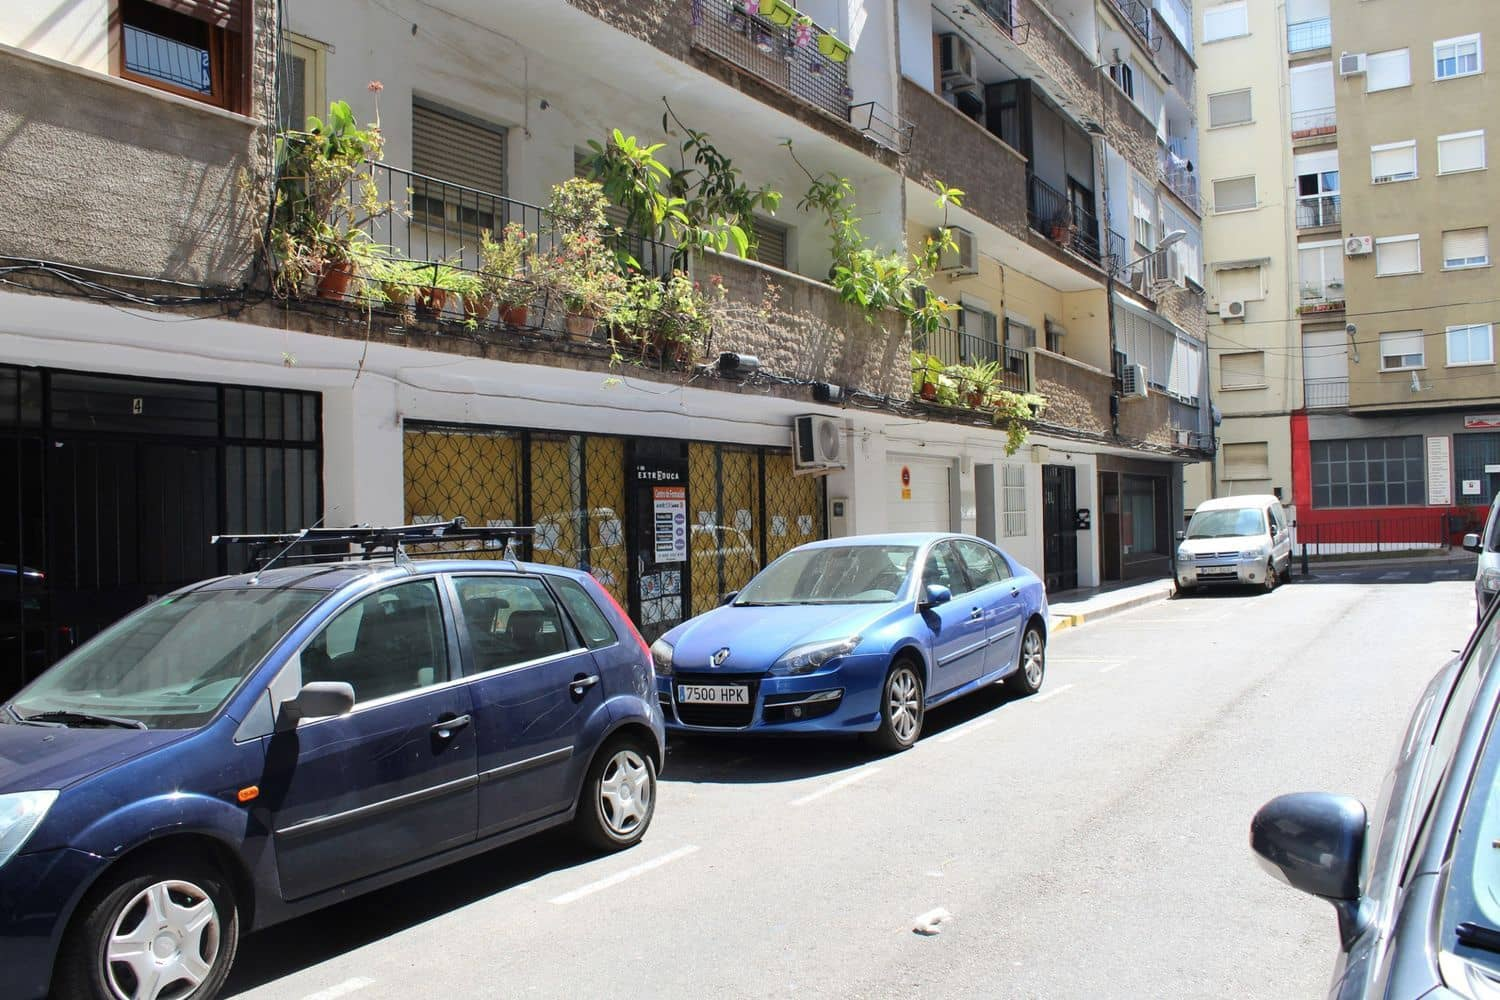 Commercial for sale in Merida - € 40,000 (Ref: 4106555)